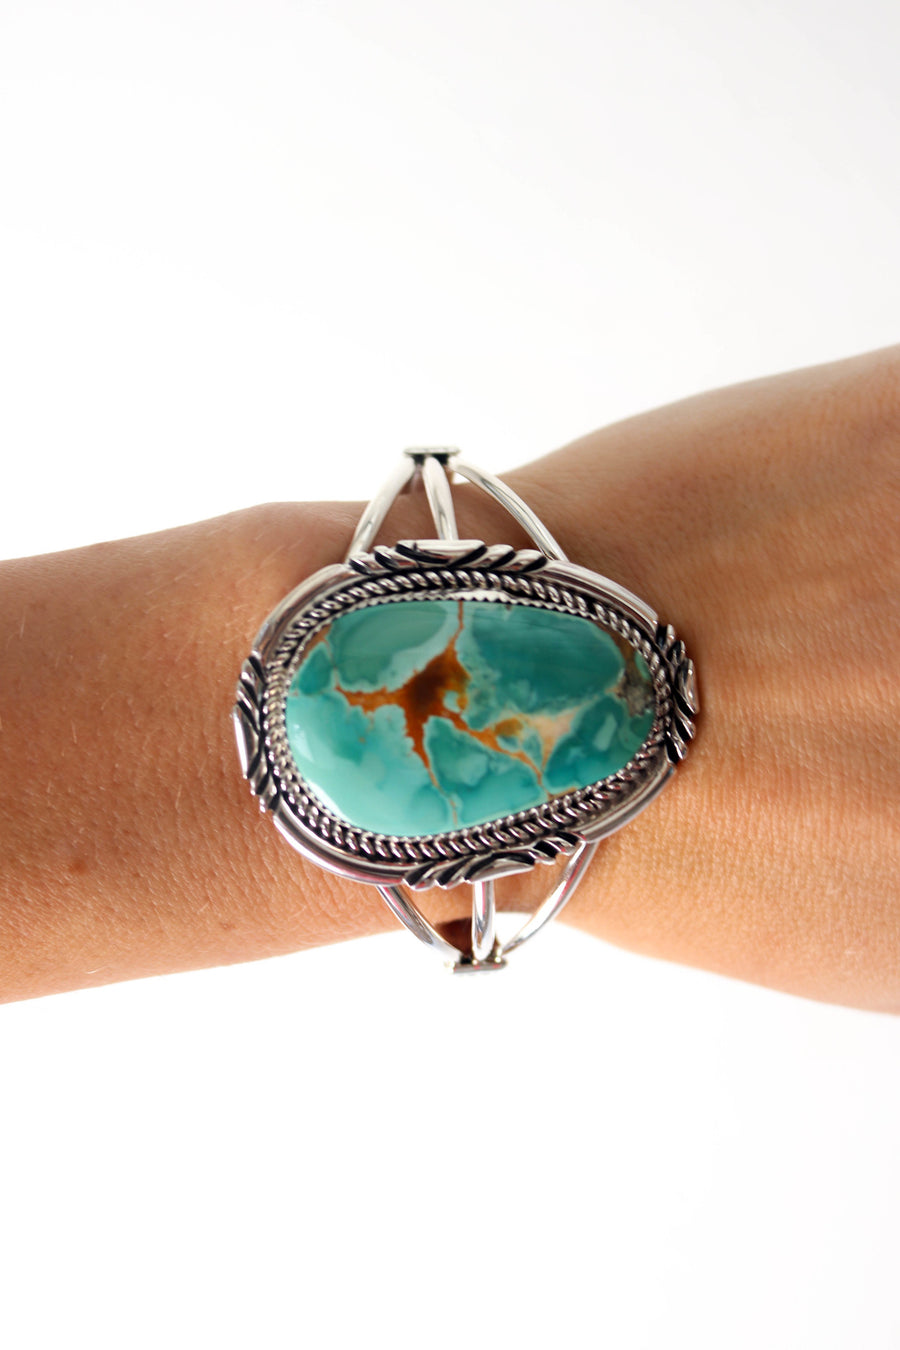 Islands Two// Navajo Turquoise Bracelet